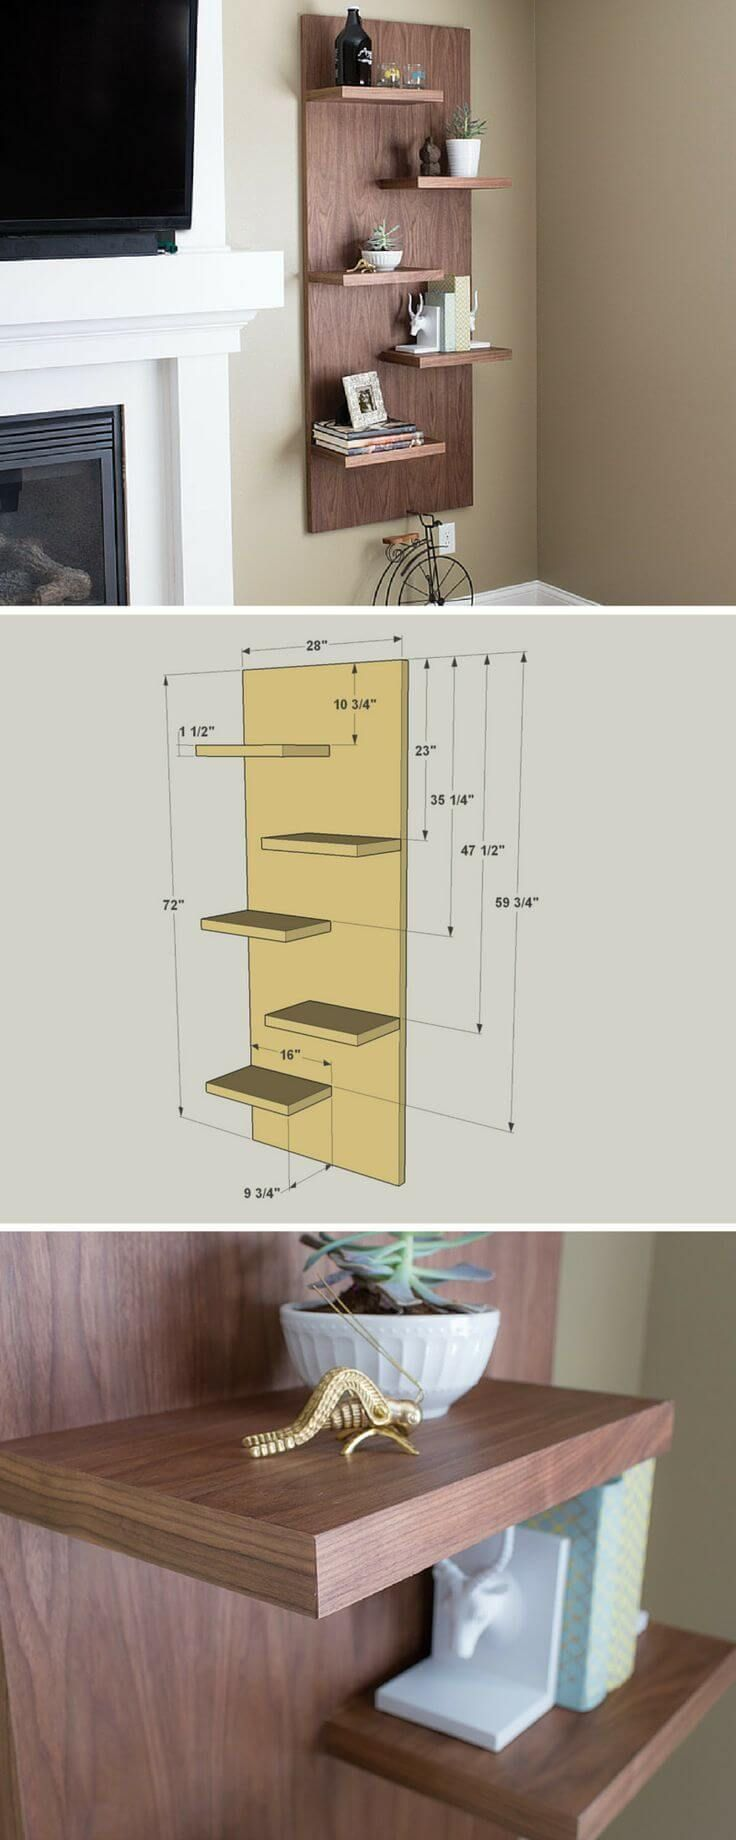 27+ Best DIY Floating Shelf Ideas and Designs for 2017